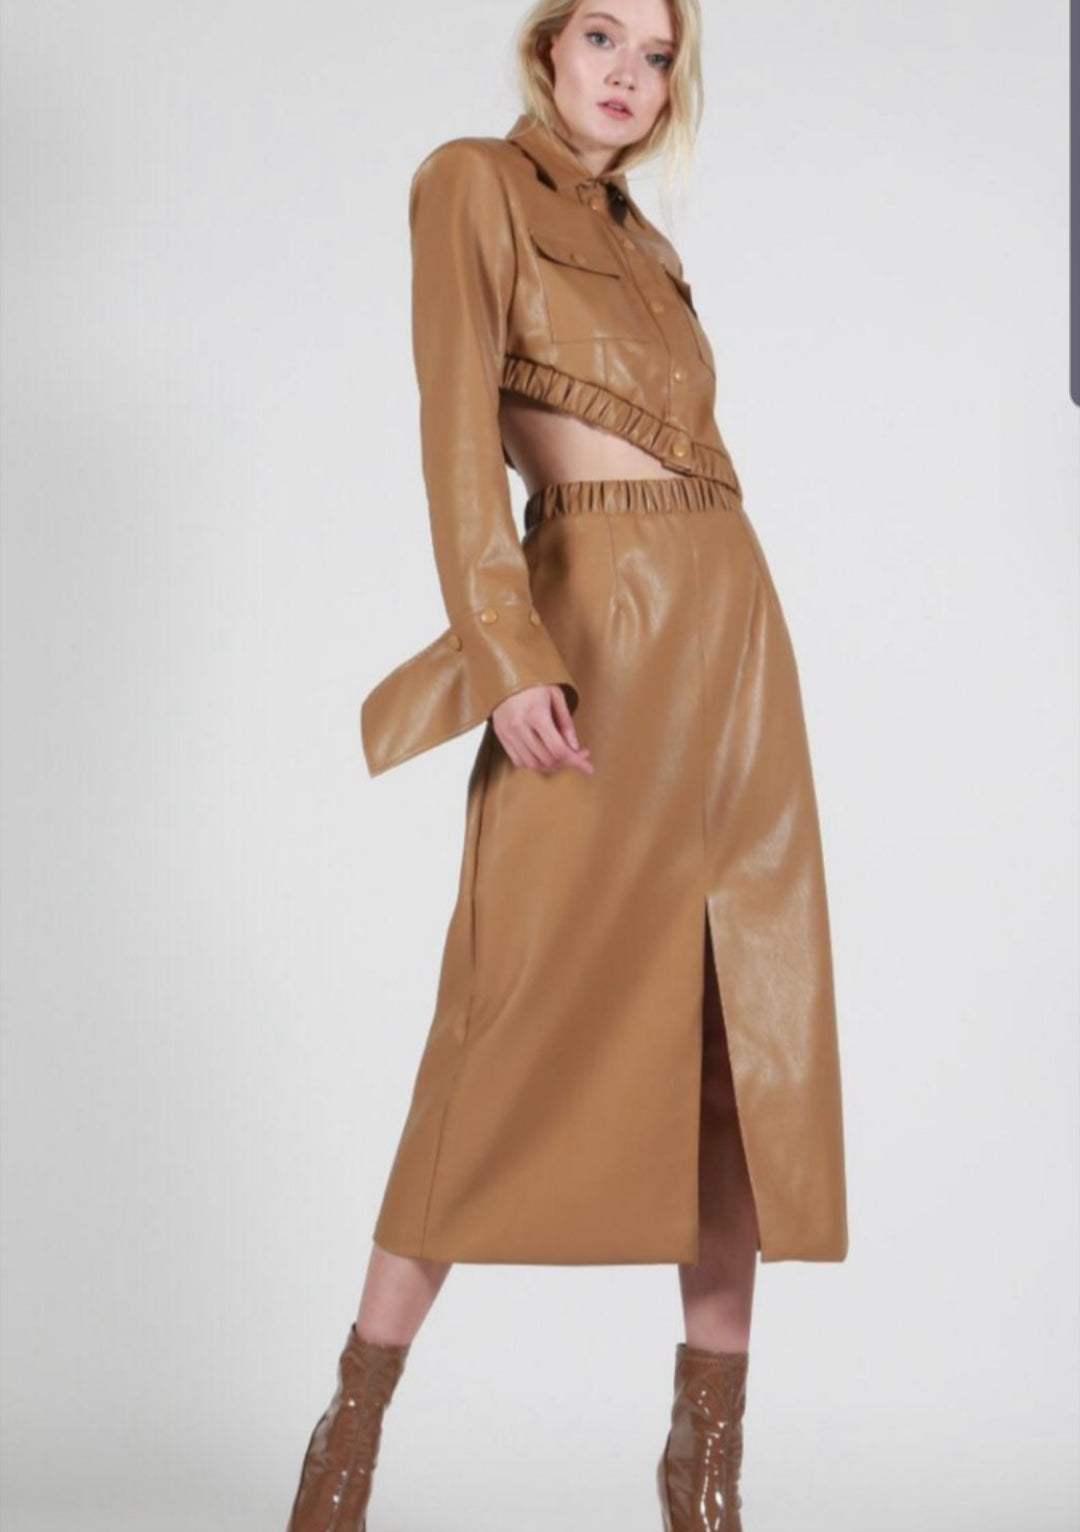 Milano Leather Jacket & Skirt Set